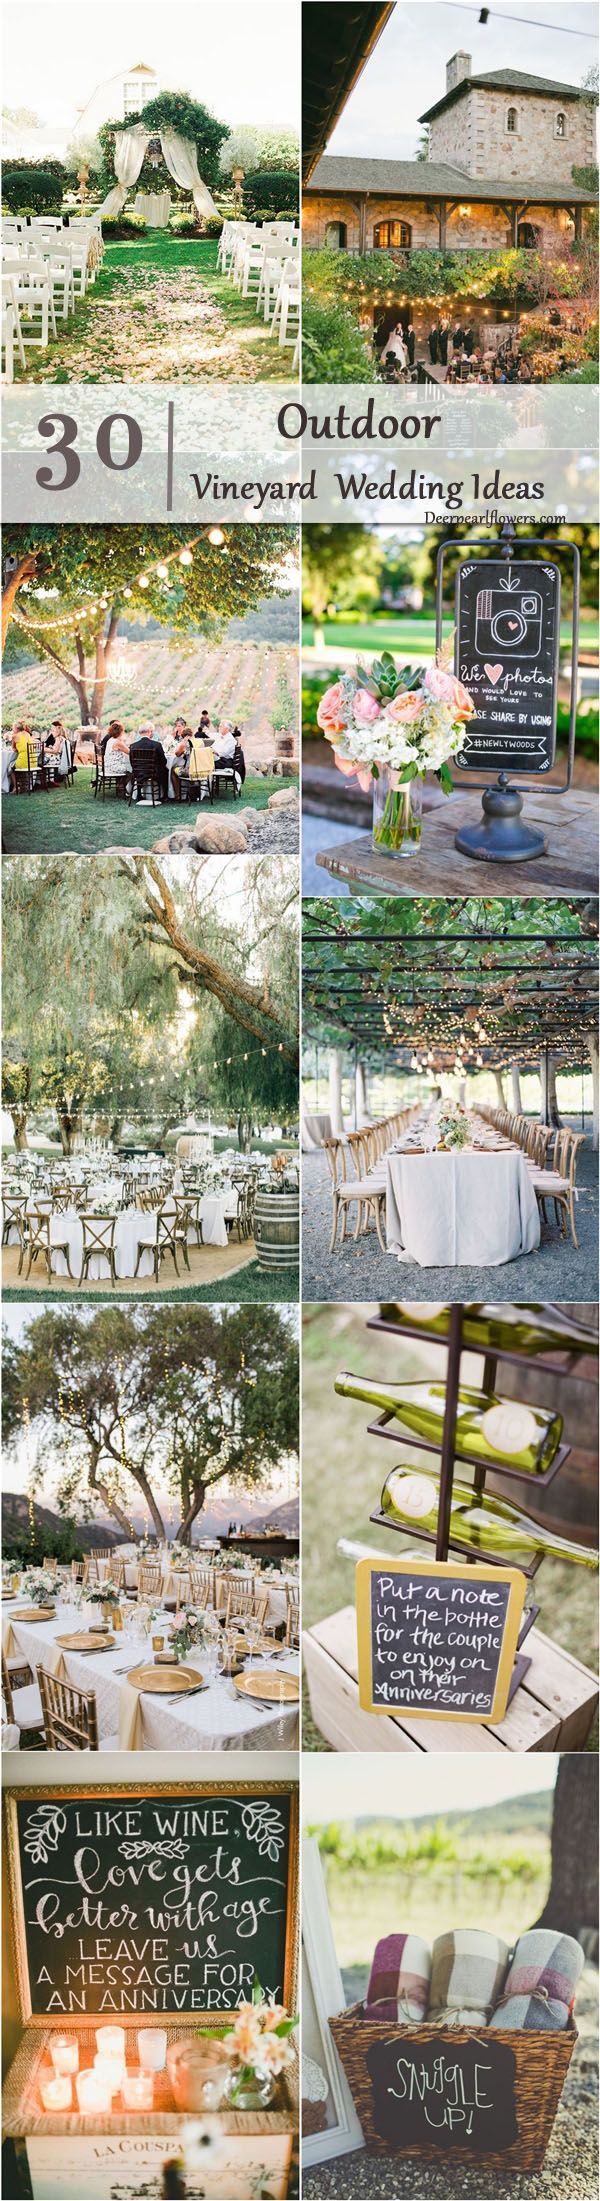 Vineyard Outdoor Wedding Decor Ideas / http://www.deerpearlflowers.com/outdoor-vineyard-wedding-ideas/